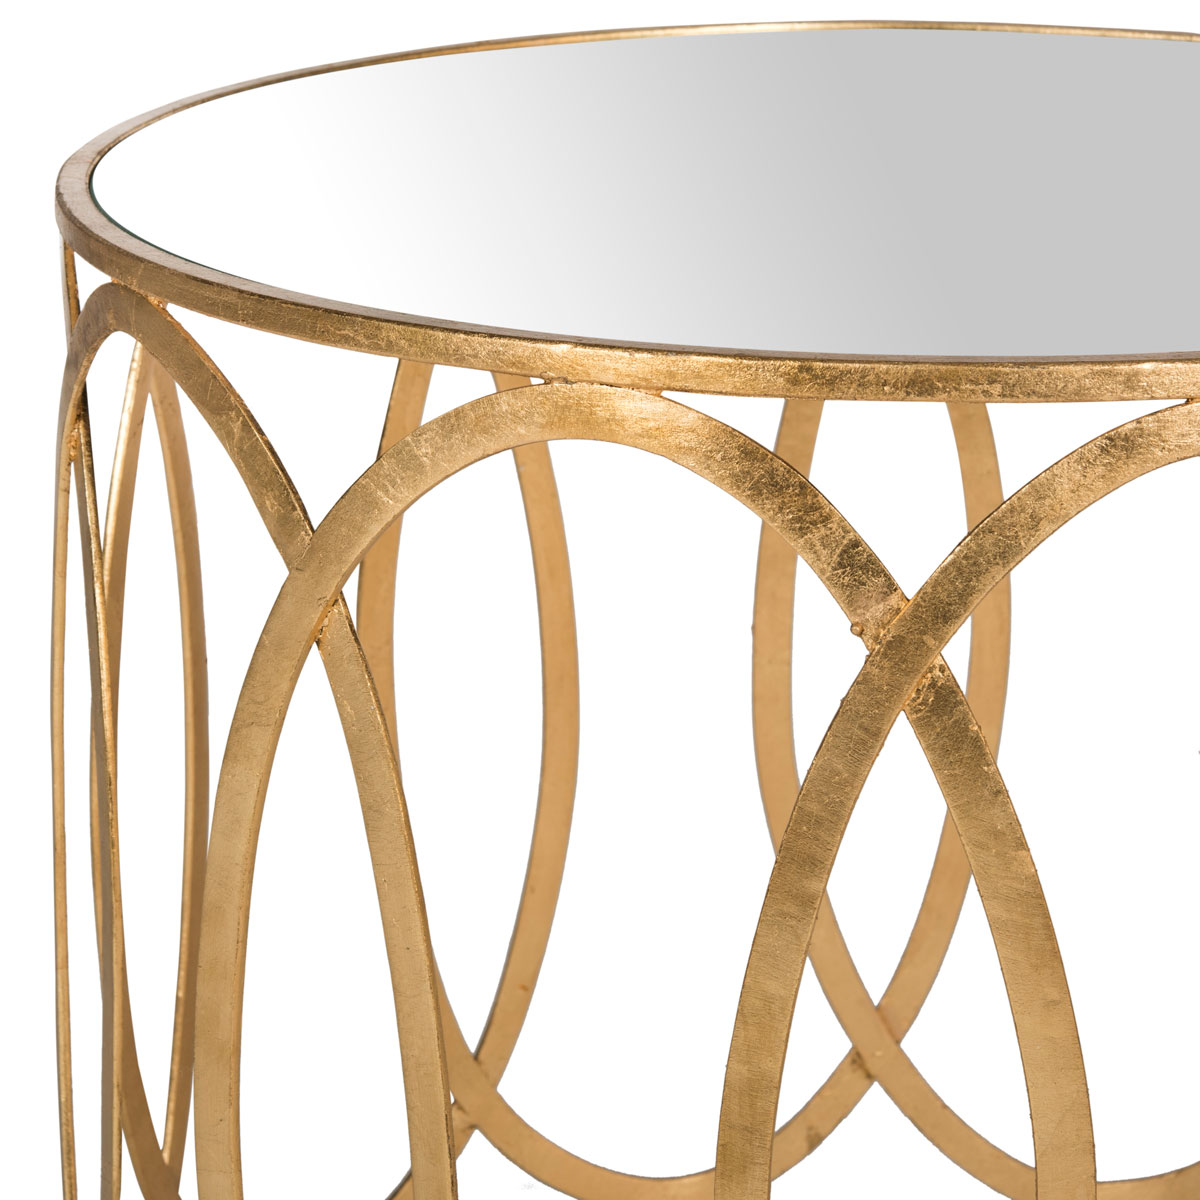 gold accent table end tables safavieh detail share this product glass cube coffee low garden round mirrored stool side unique cabinets lucite pedestal chrome mango wood console